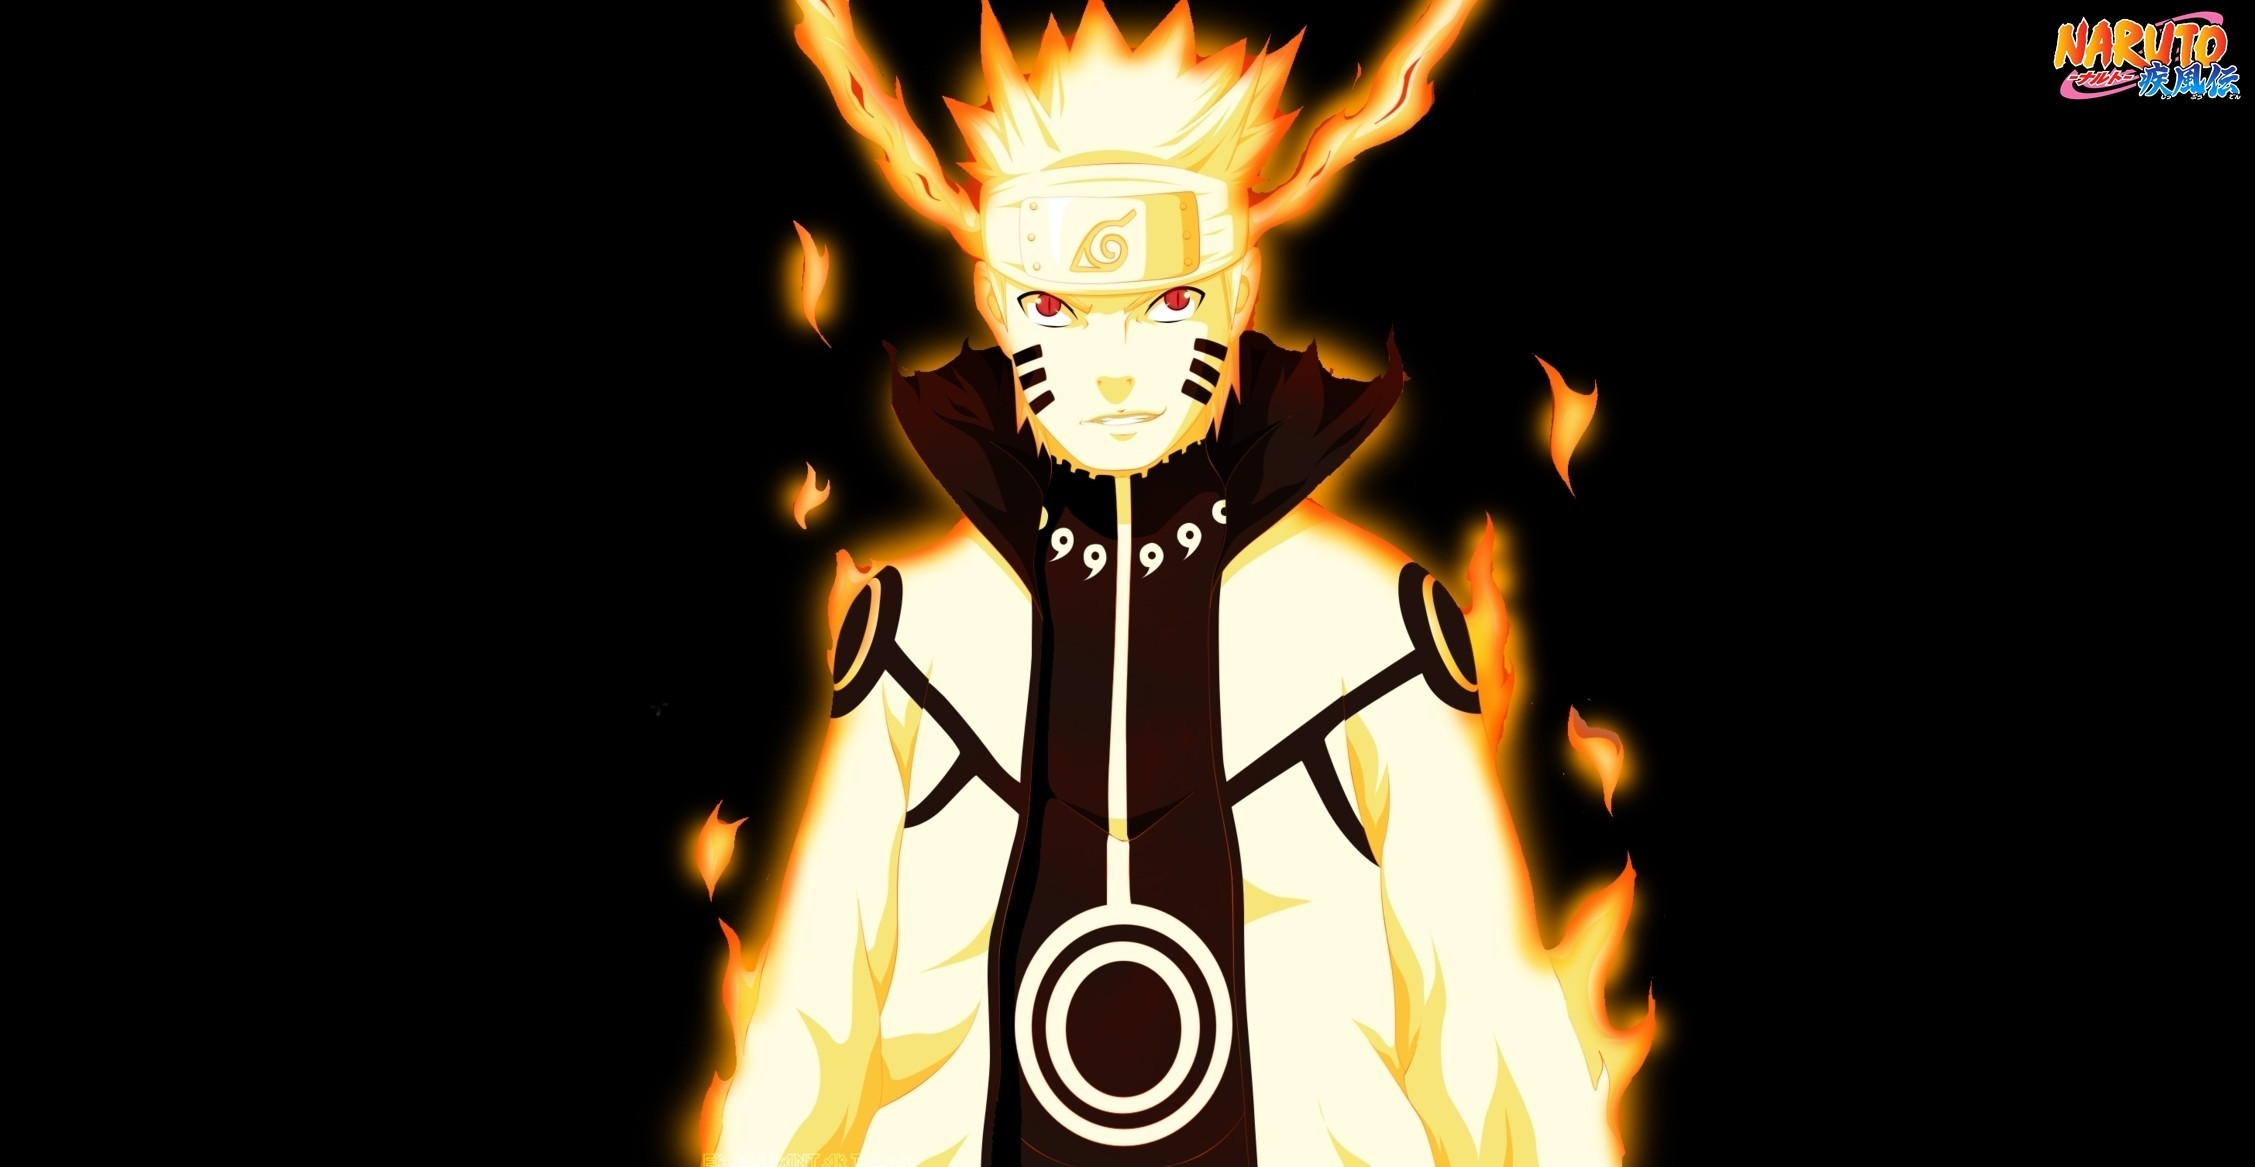 naruto live wallpaper windows 8 wallpapersafari